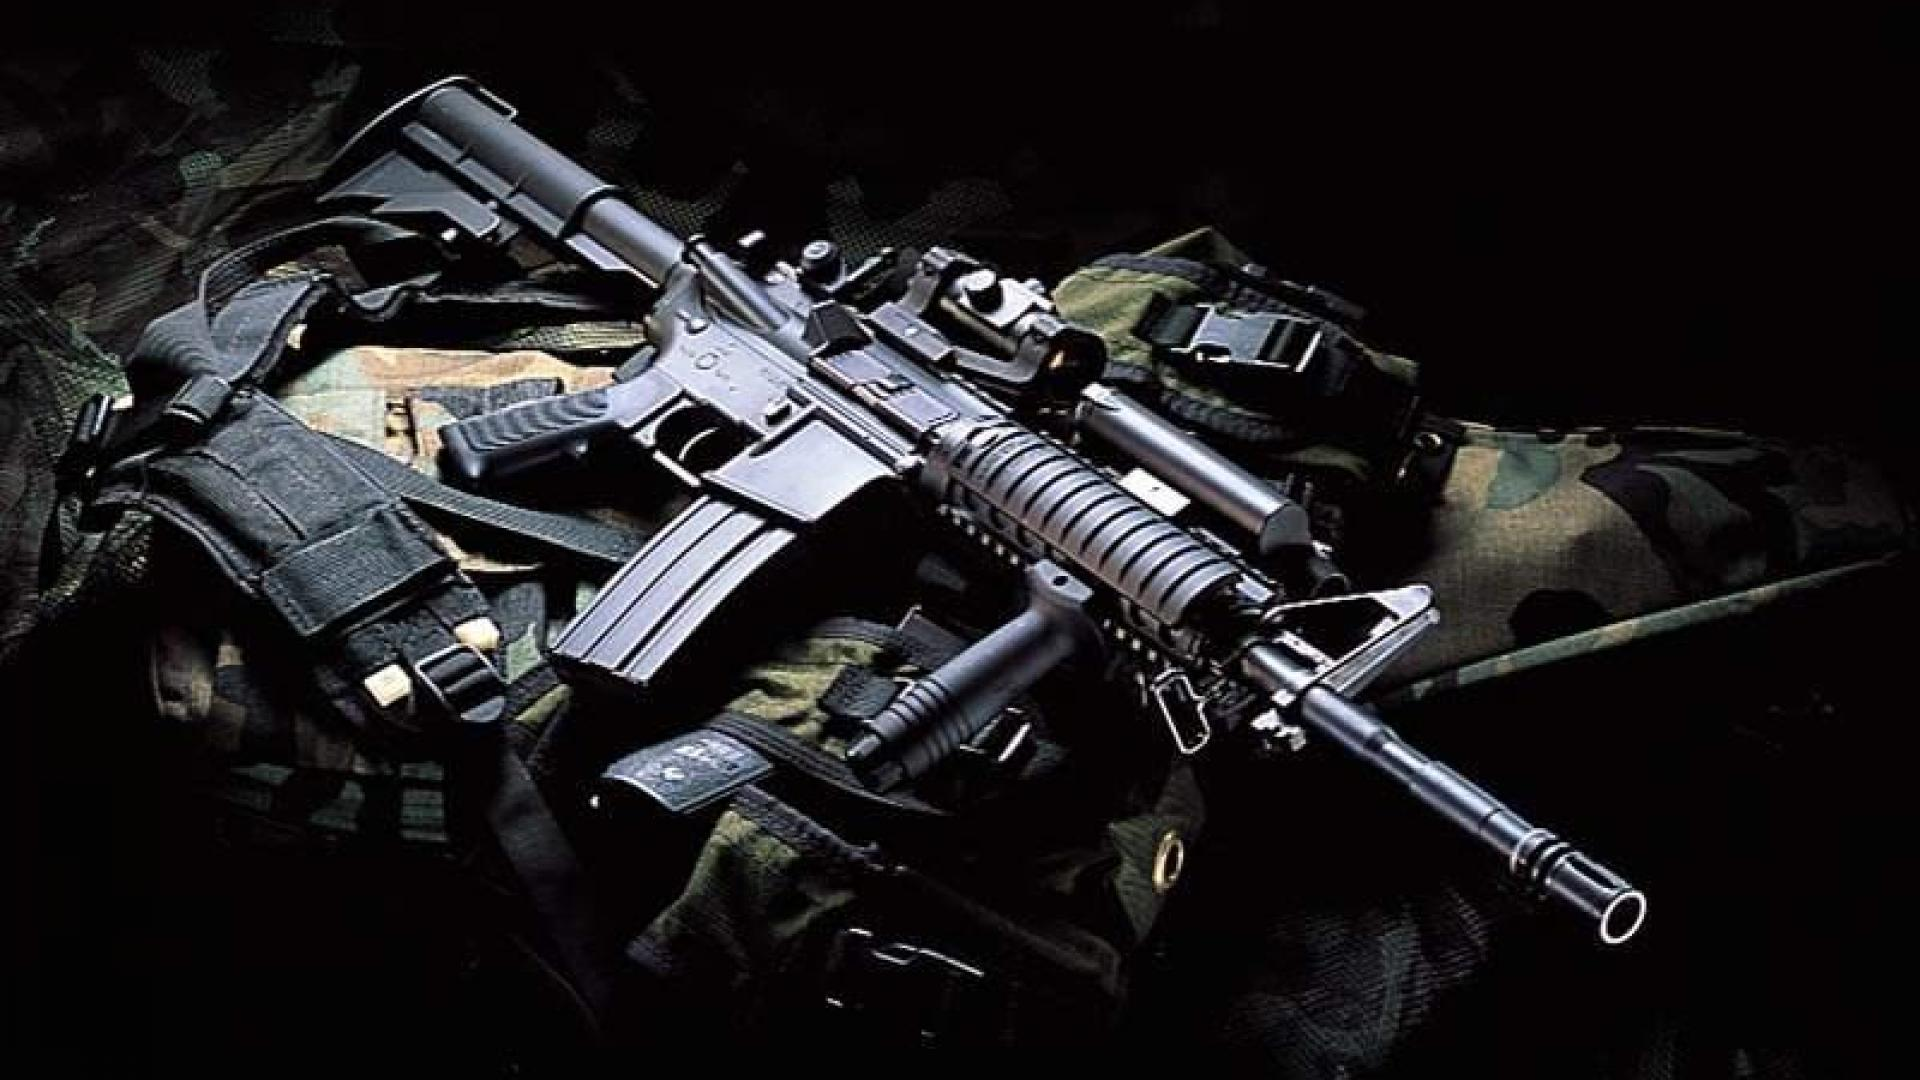 Ar 15 Wallpaper Download Free Beautiful Full Hd: M16 HD Wallpapers For Desktop Download